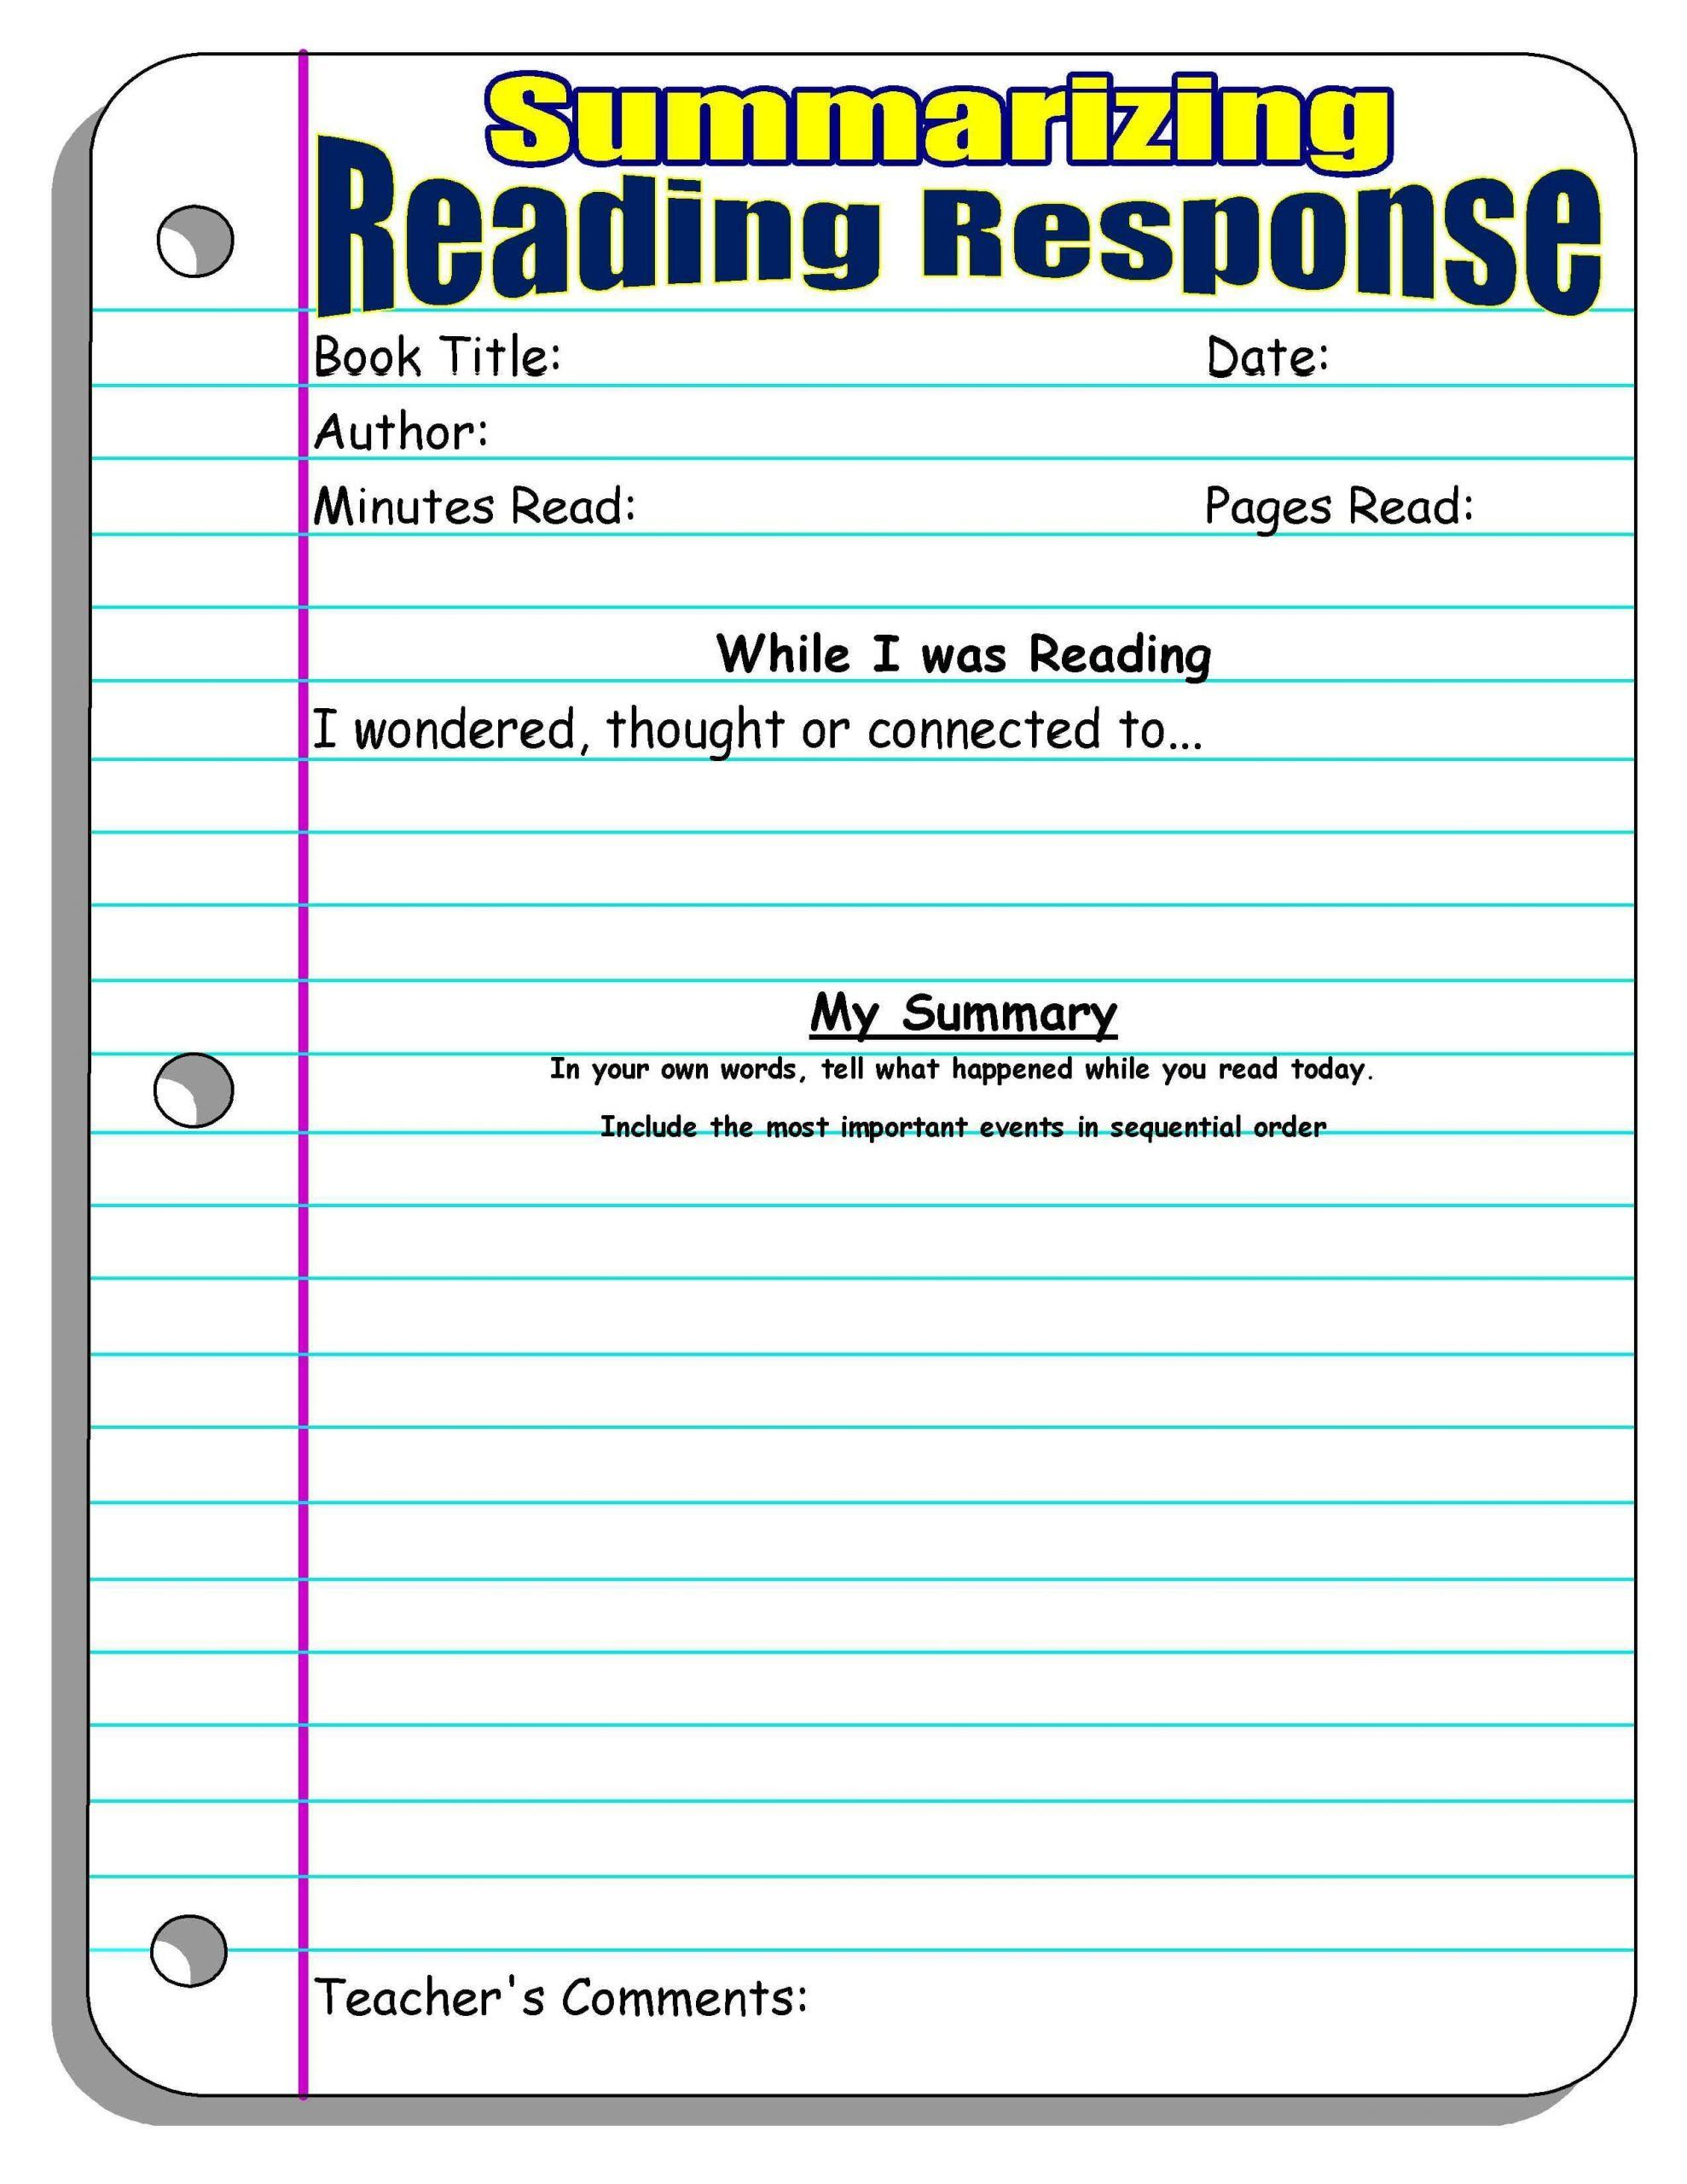 Summarizing Worksheet 4th Grade Reading Response Forms And